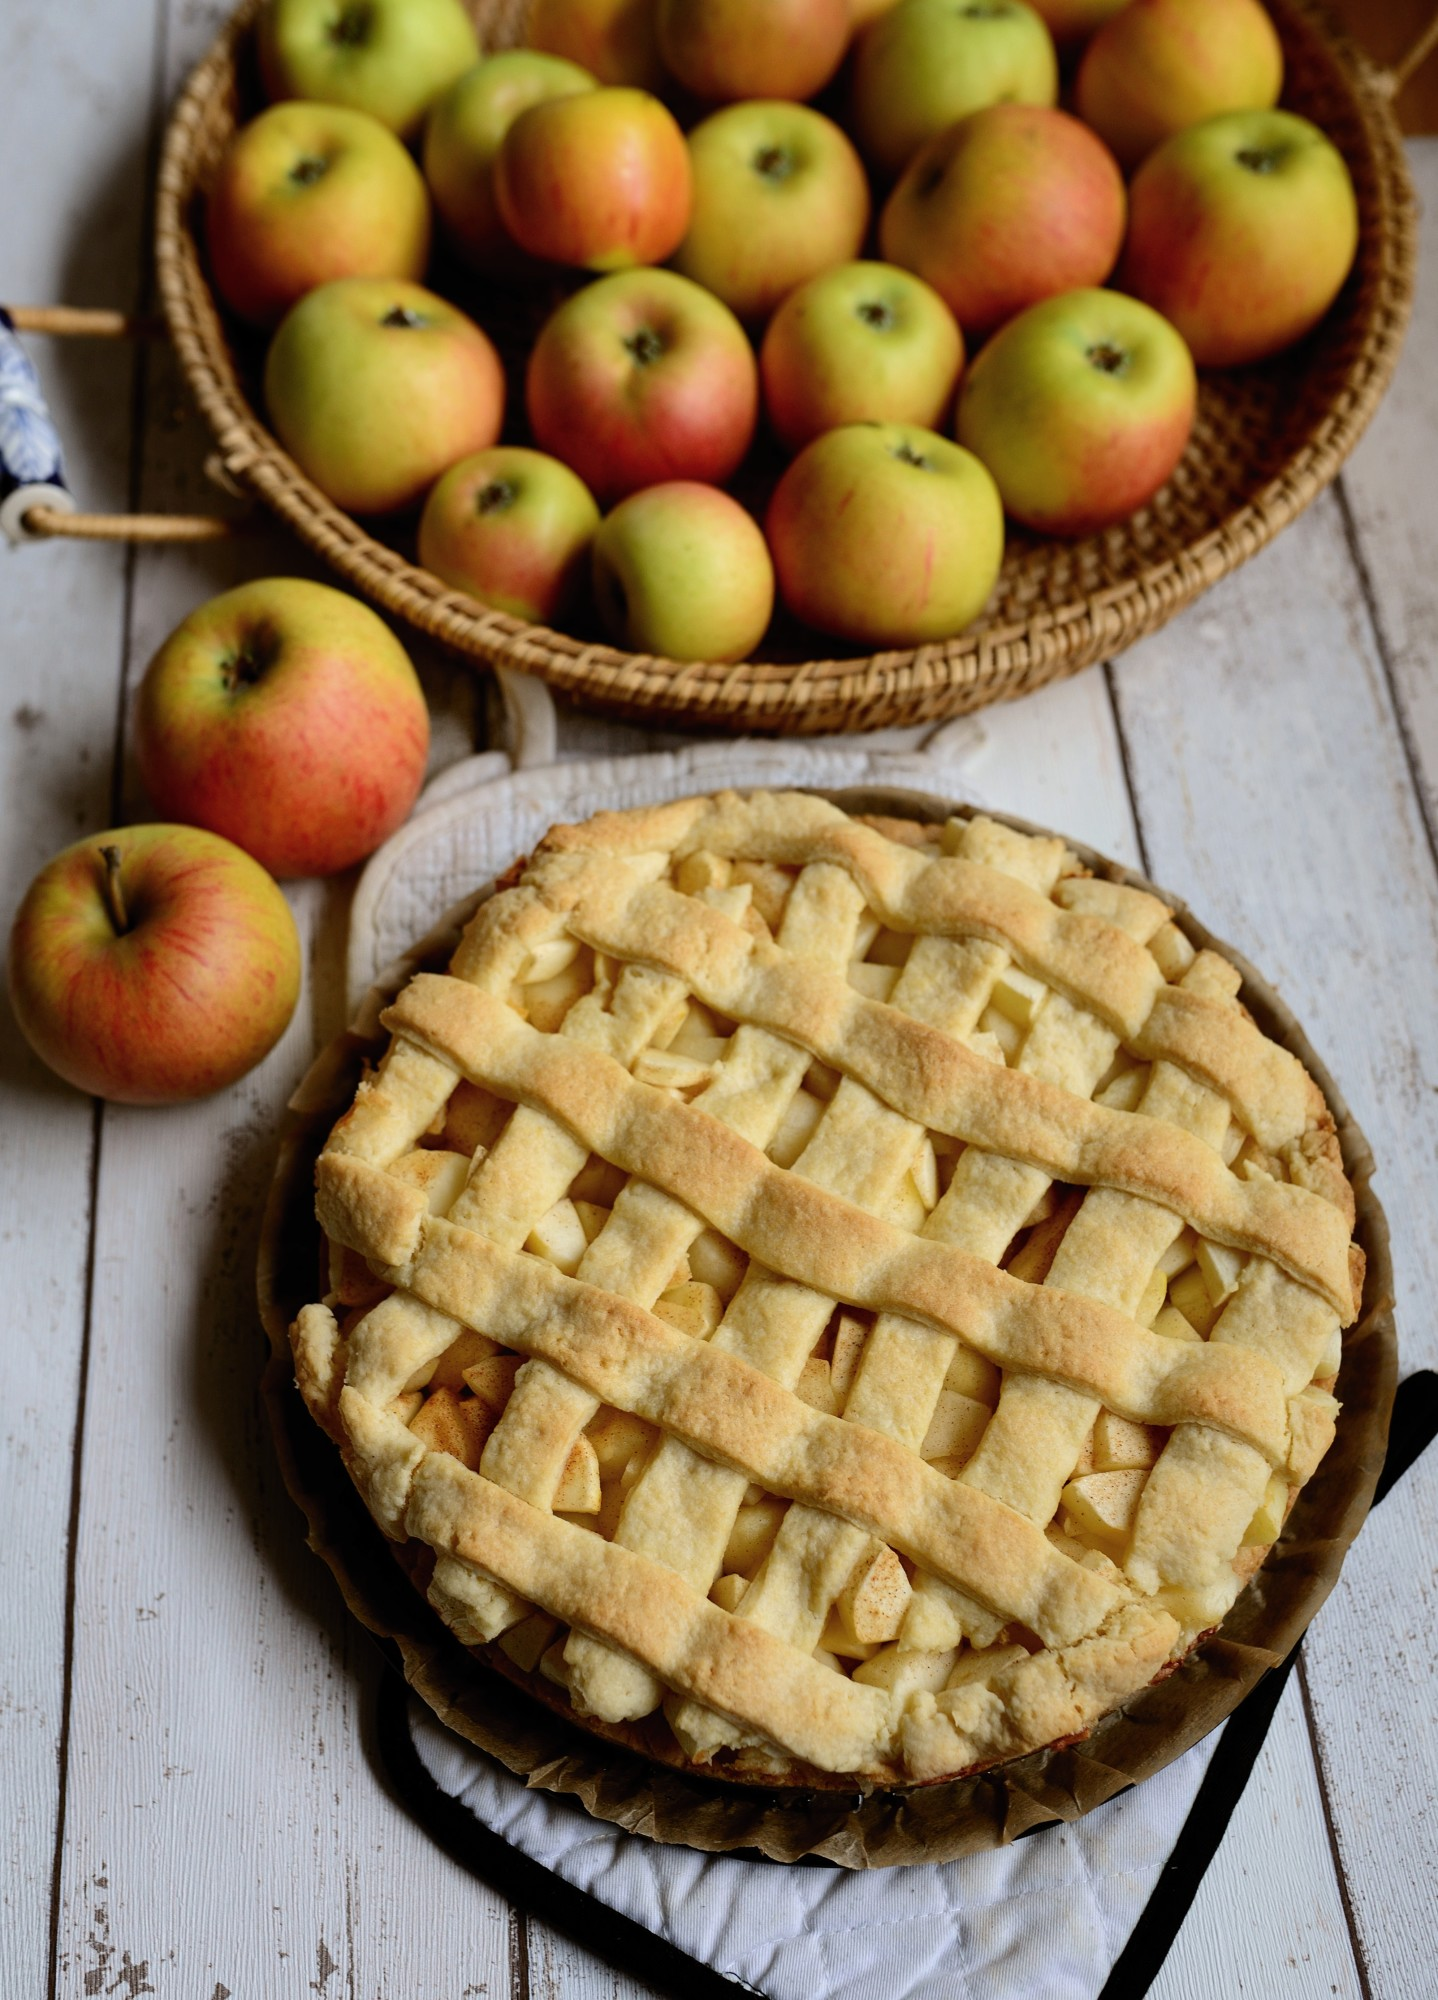 A Taste of Autumn: How to Make Apple Pie the Right Way